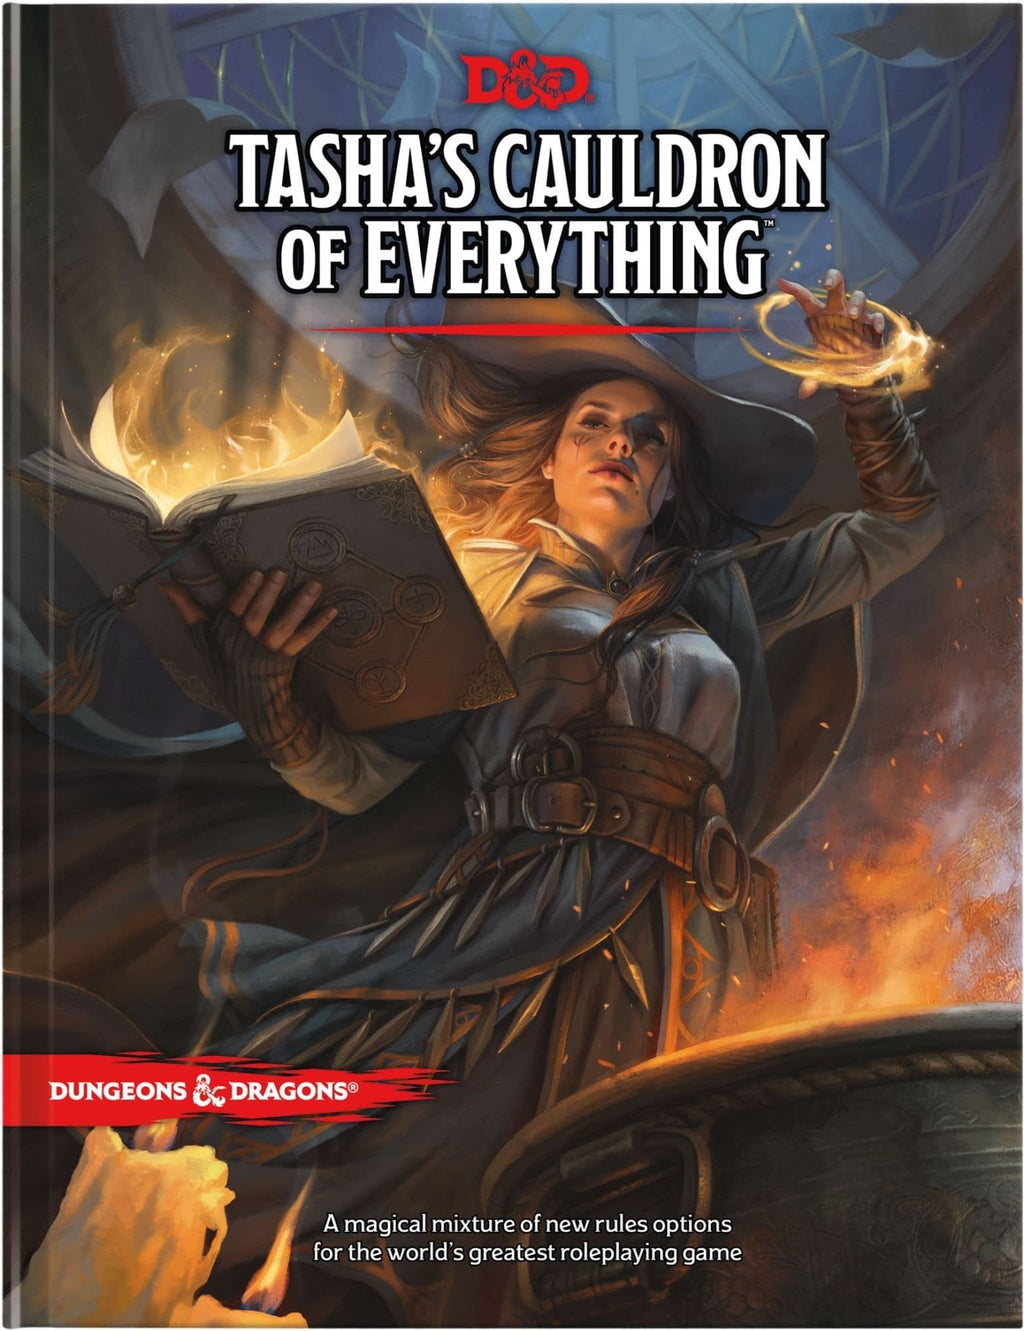 Tasha's Cauldron of Everything: Dungeons & Dragons